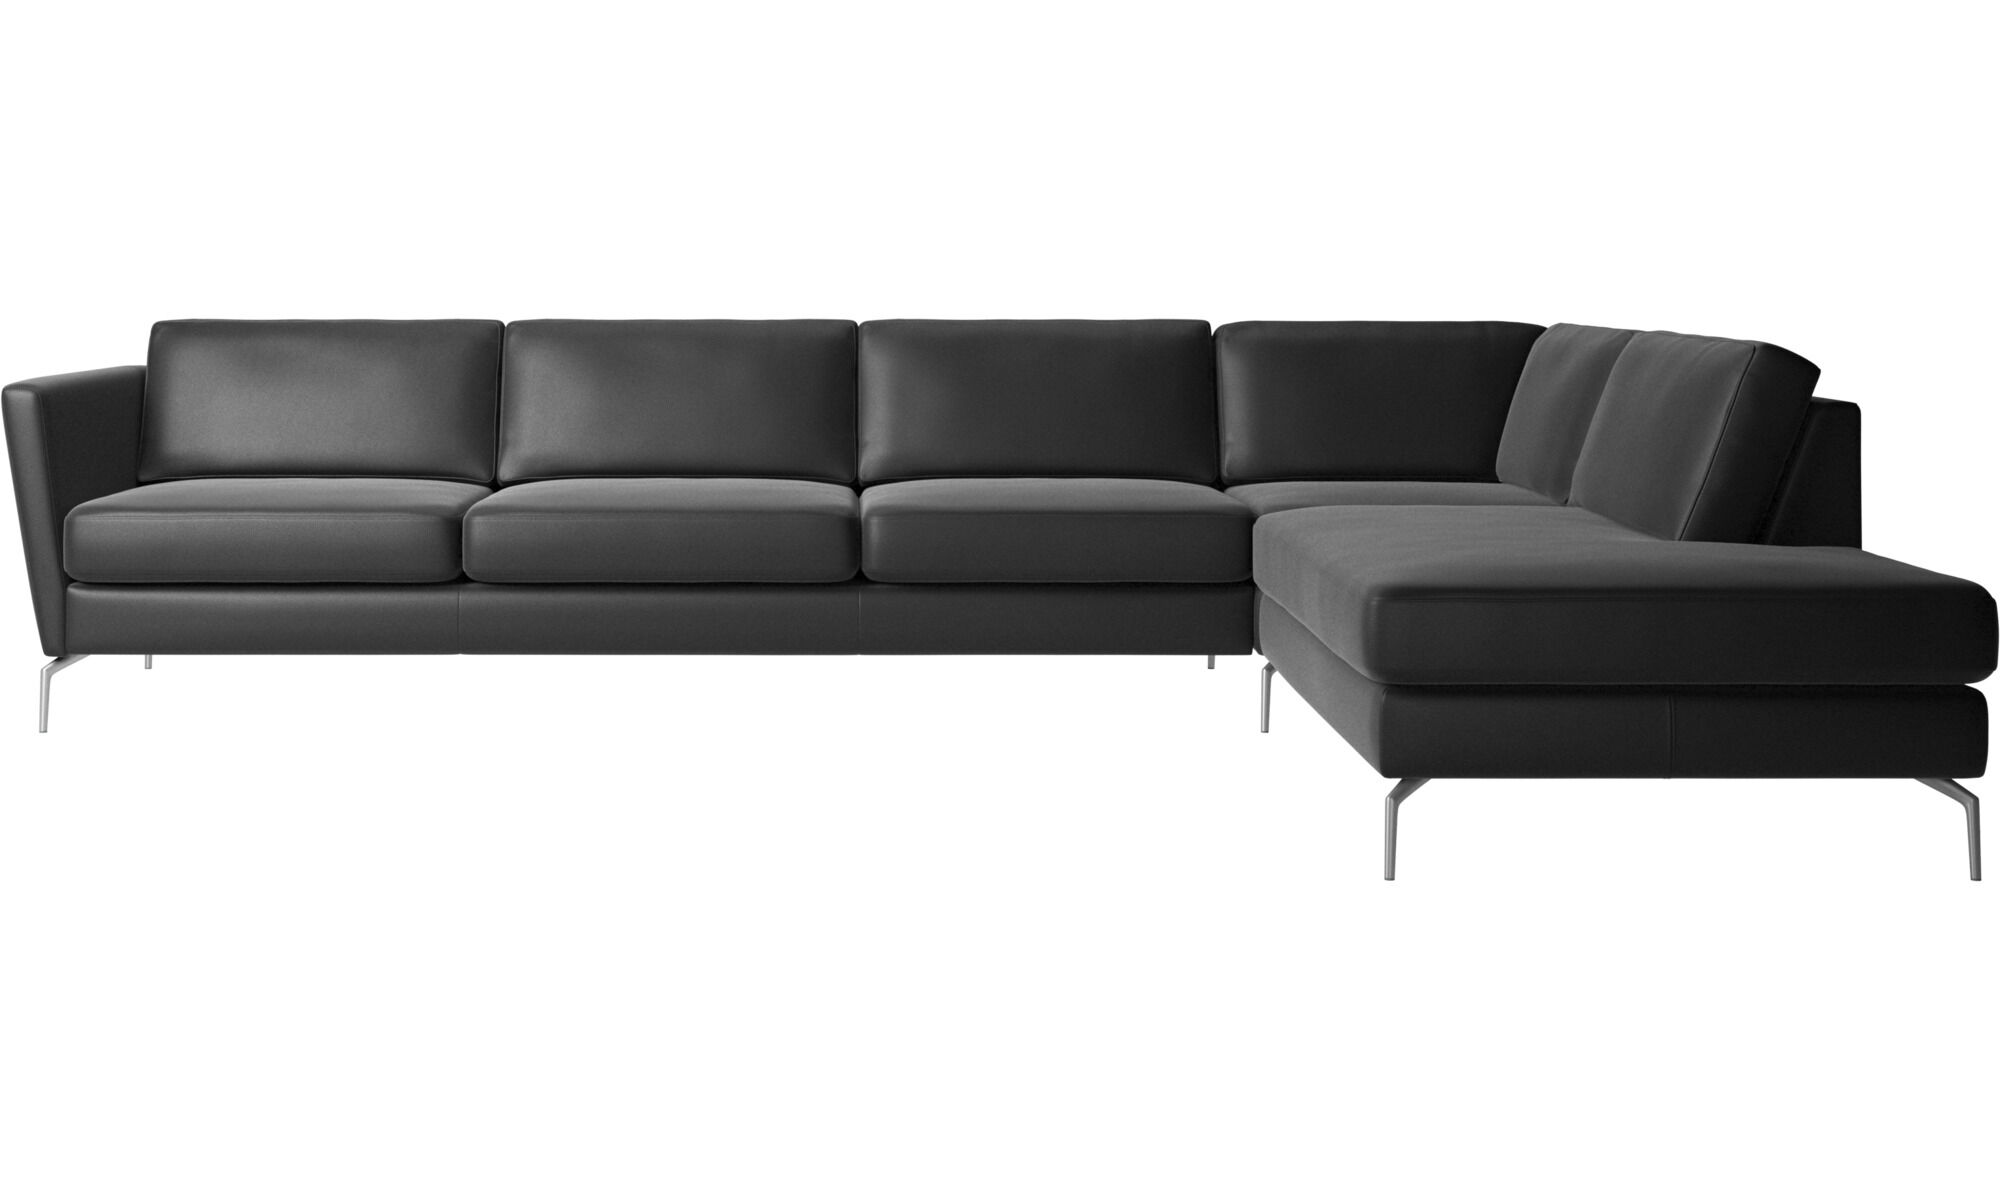 Ecksofa Design Modern Sofas With Open End Quality From Boconcept